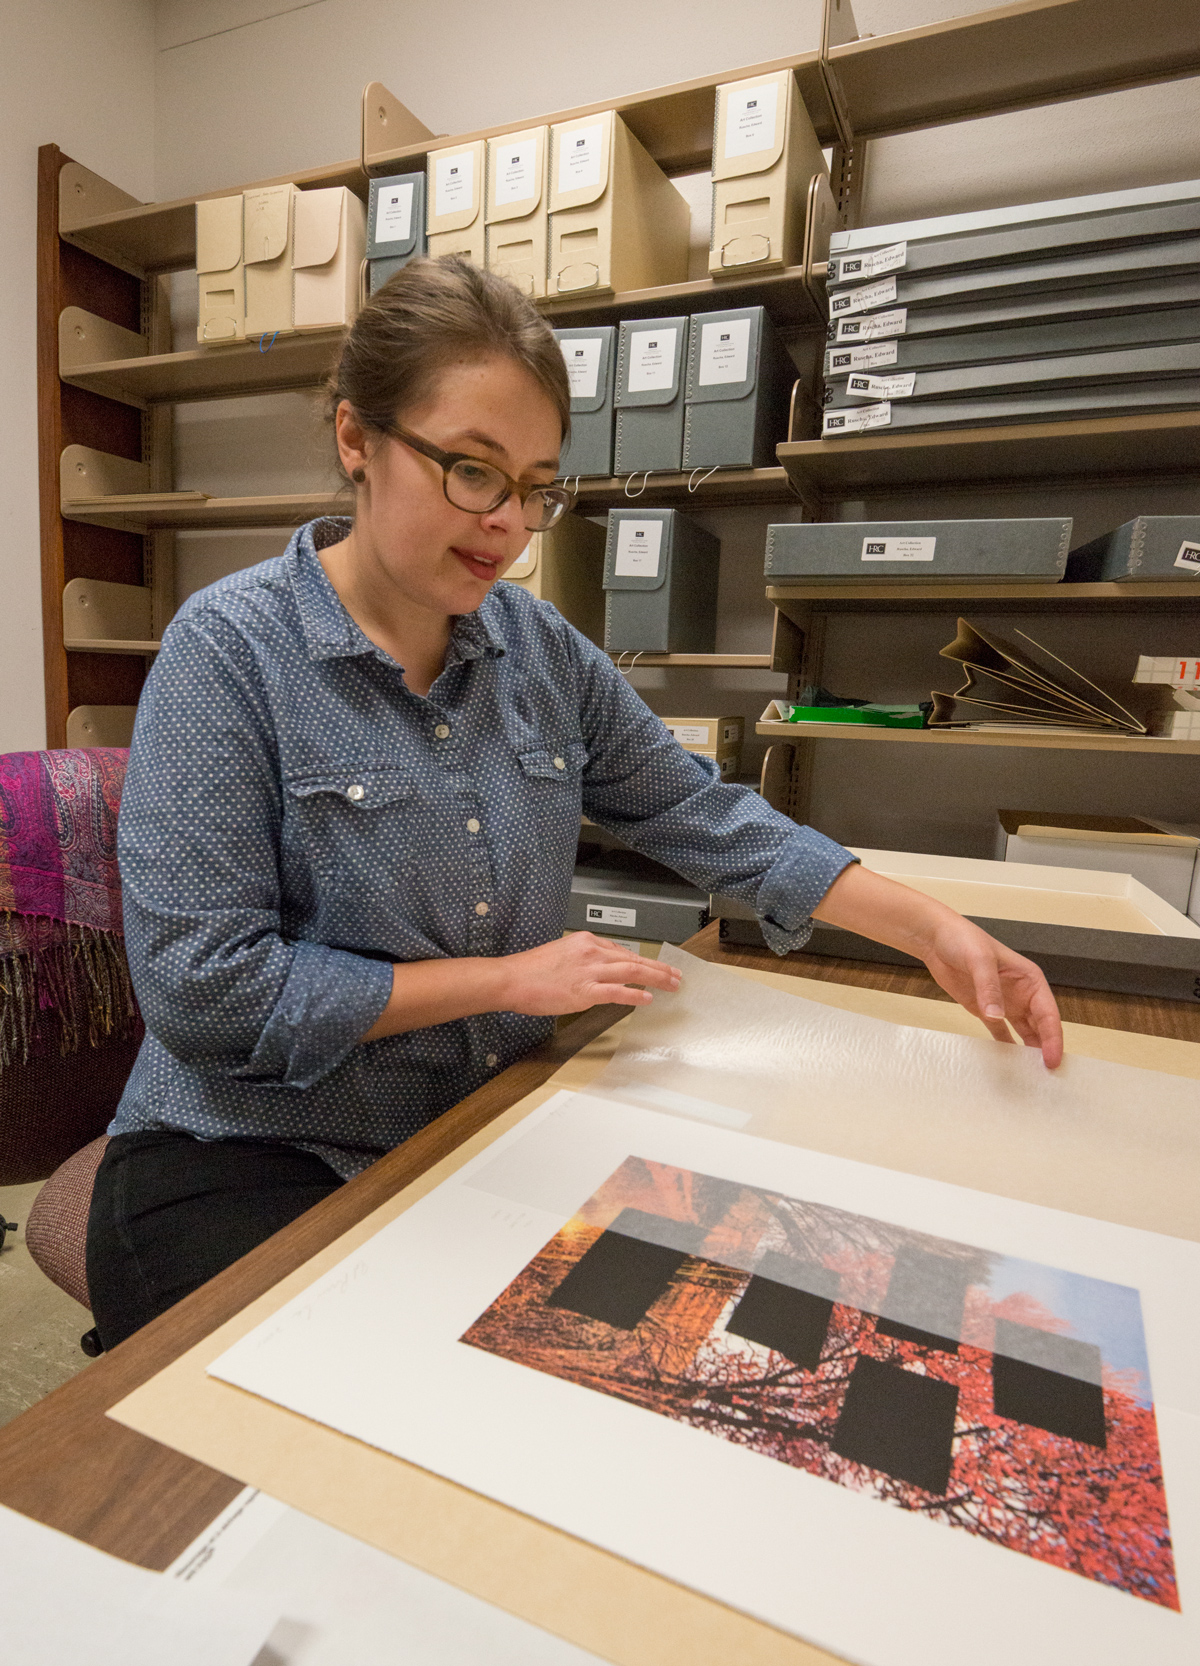 Archivist Anne Kofmehl preparing the Edward Ruscha archive. Photo by Pete Smith